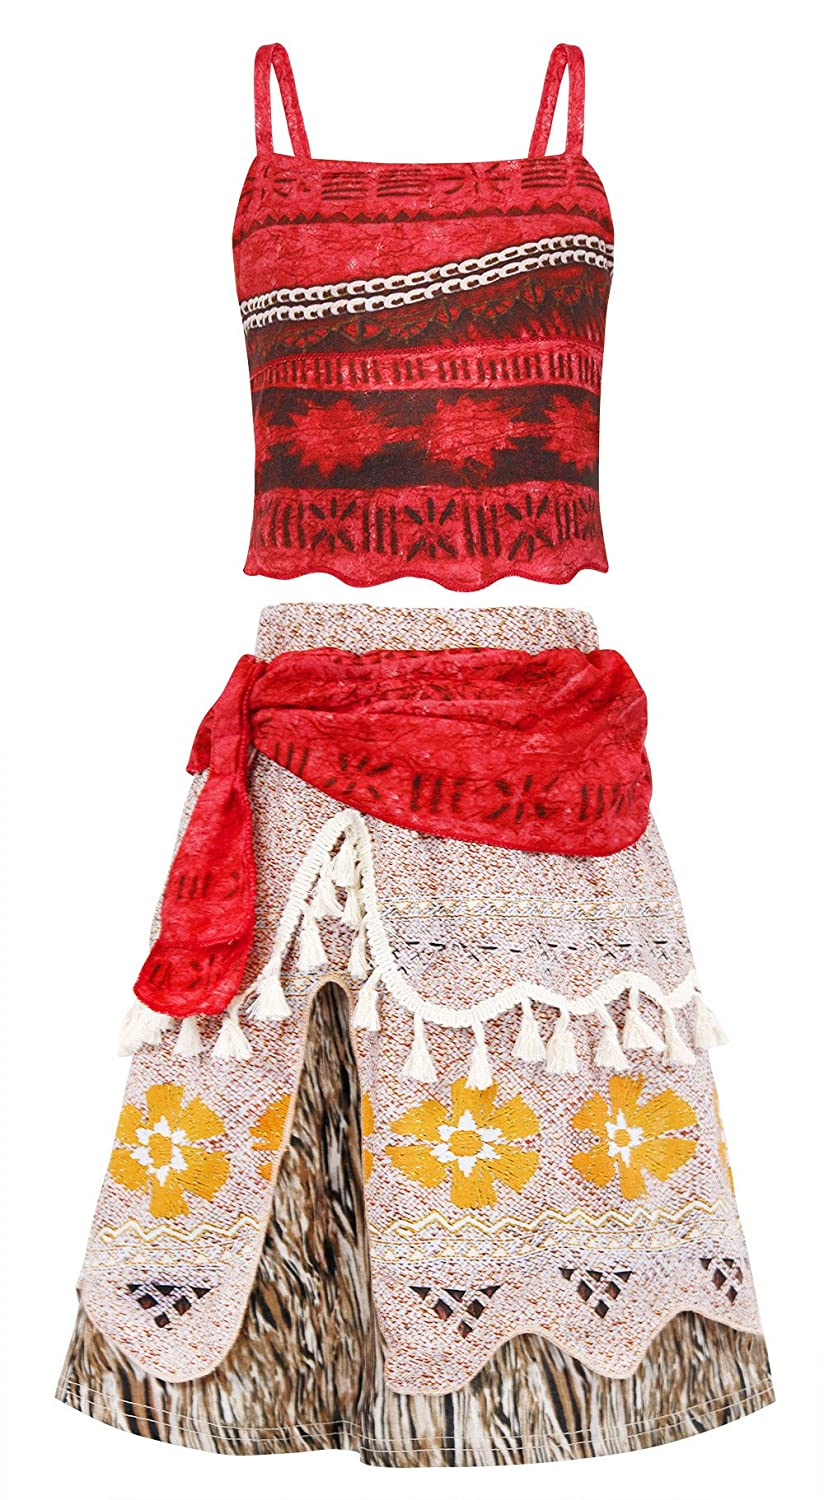 AmzBarley Moana Costume Dress up Outfit for Girls Kids Halloween Holiday Party Fancy Dress